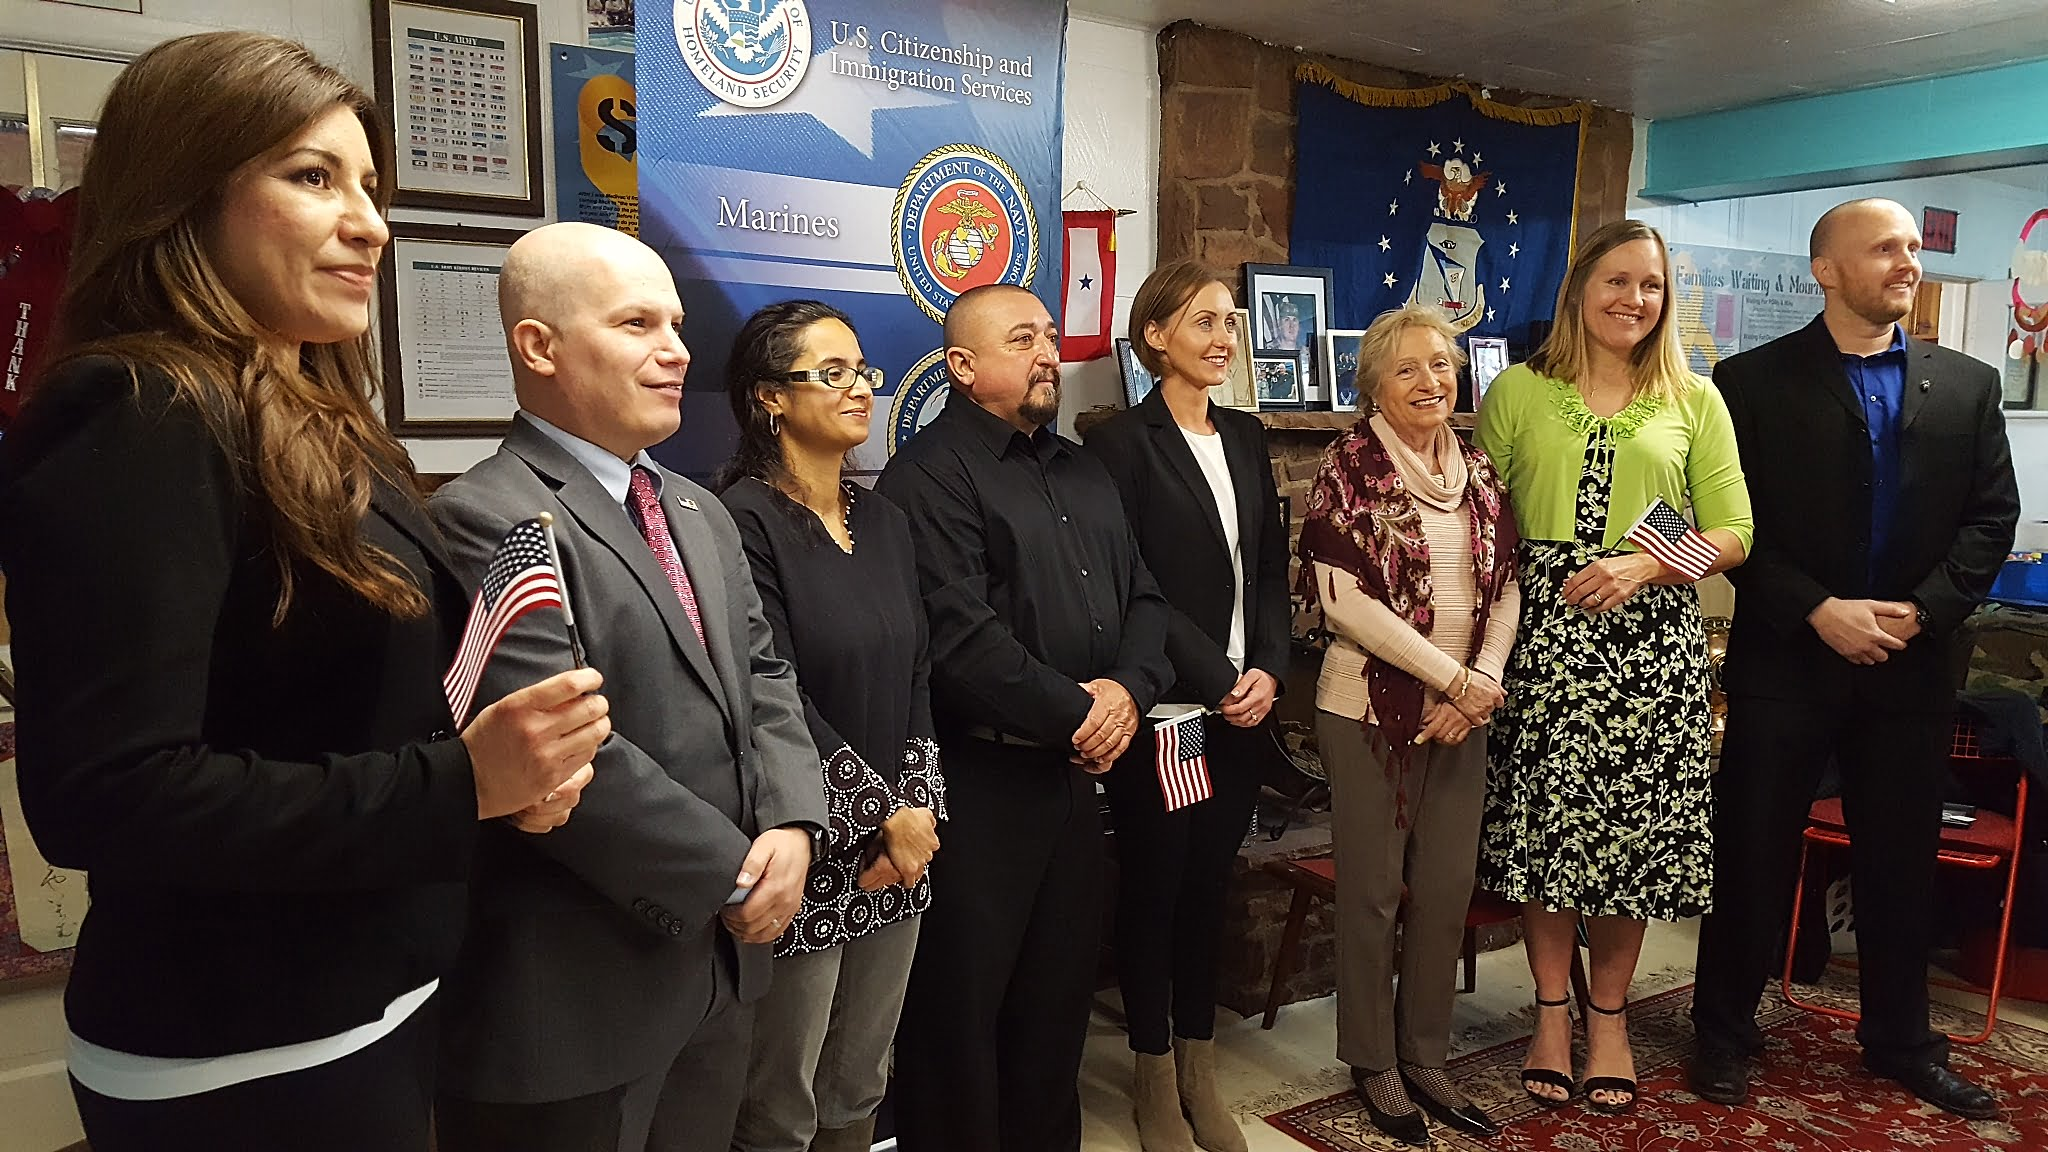 Immigrants become citizens in ceremony